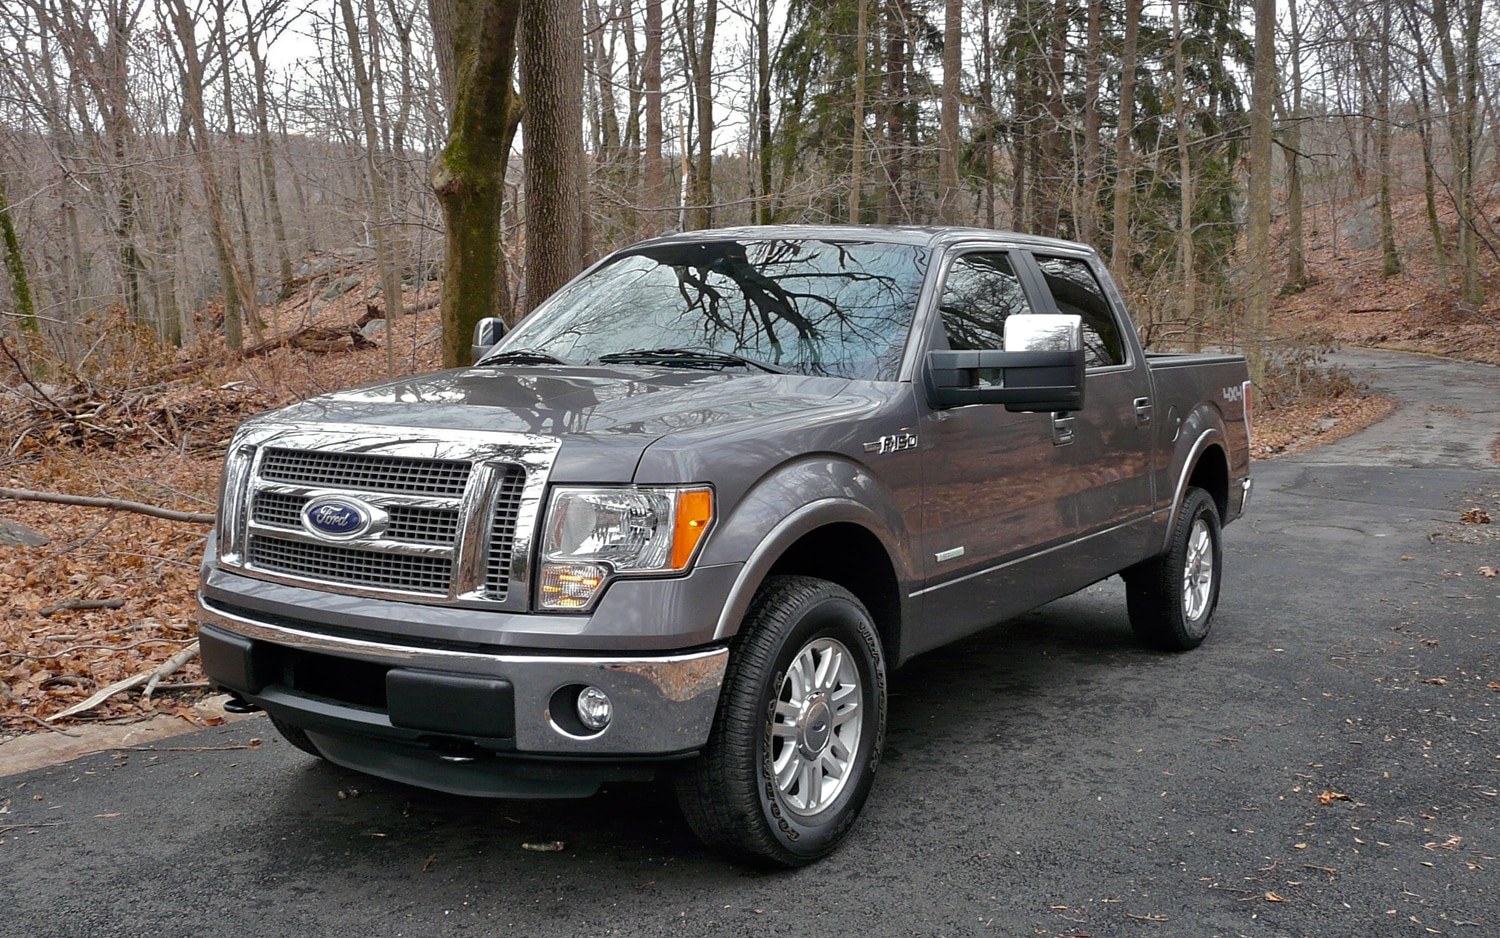 2012 Ford F150 EcoBoost Front Left Side View